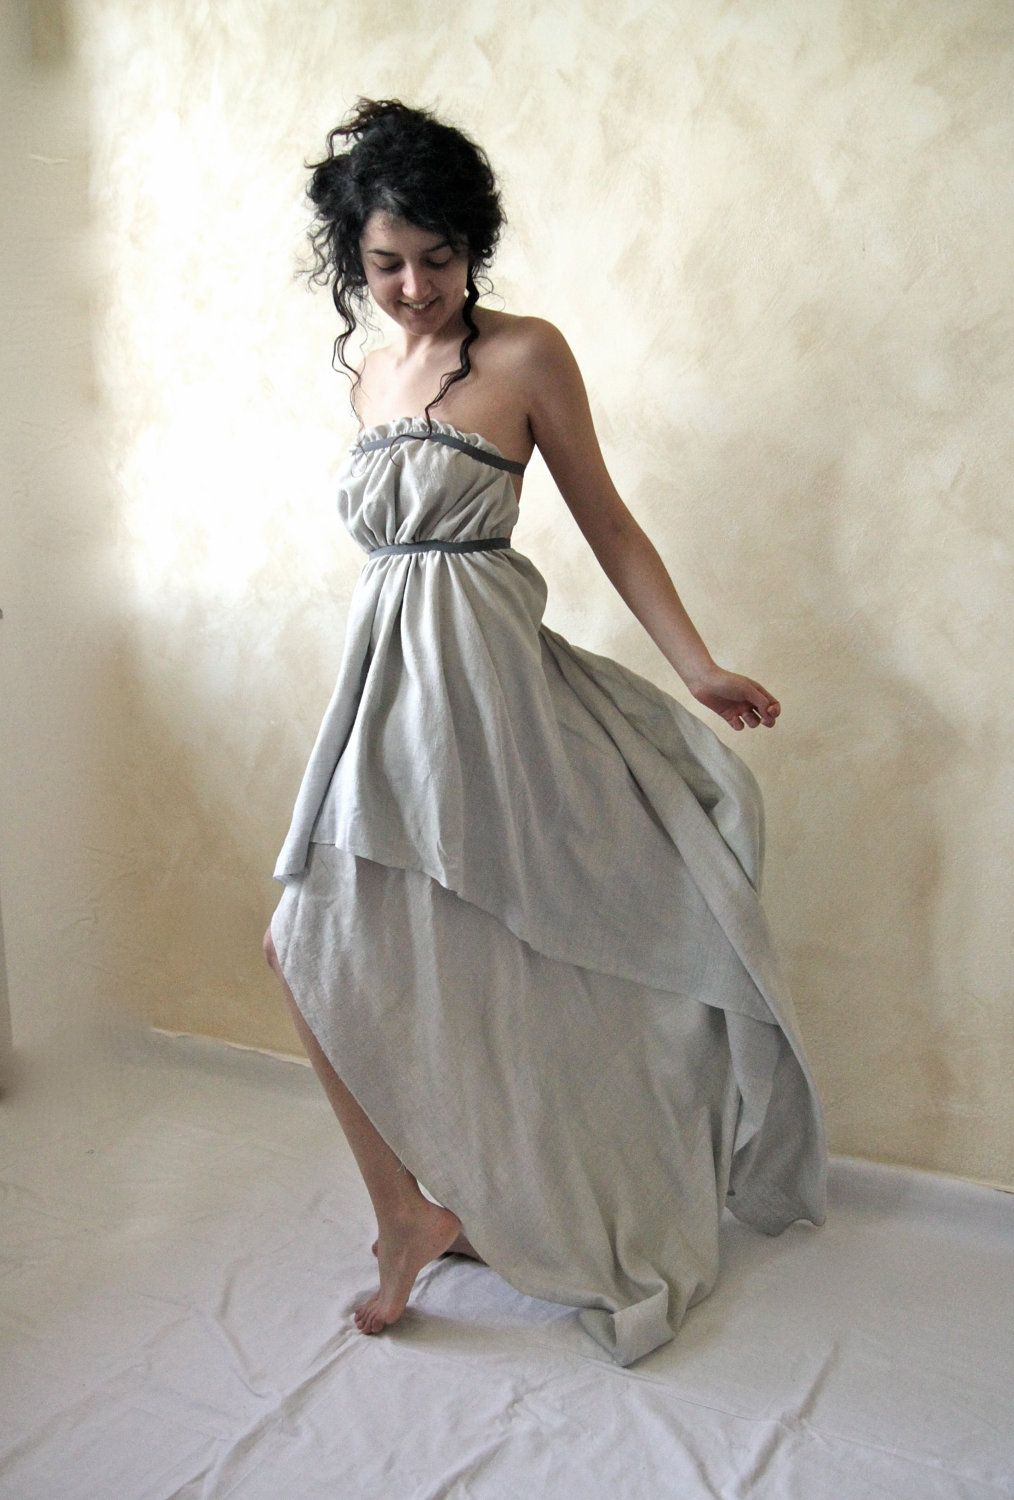 Ethereal fairy gown in dusty light blue rough silk fashion